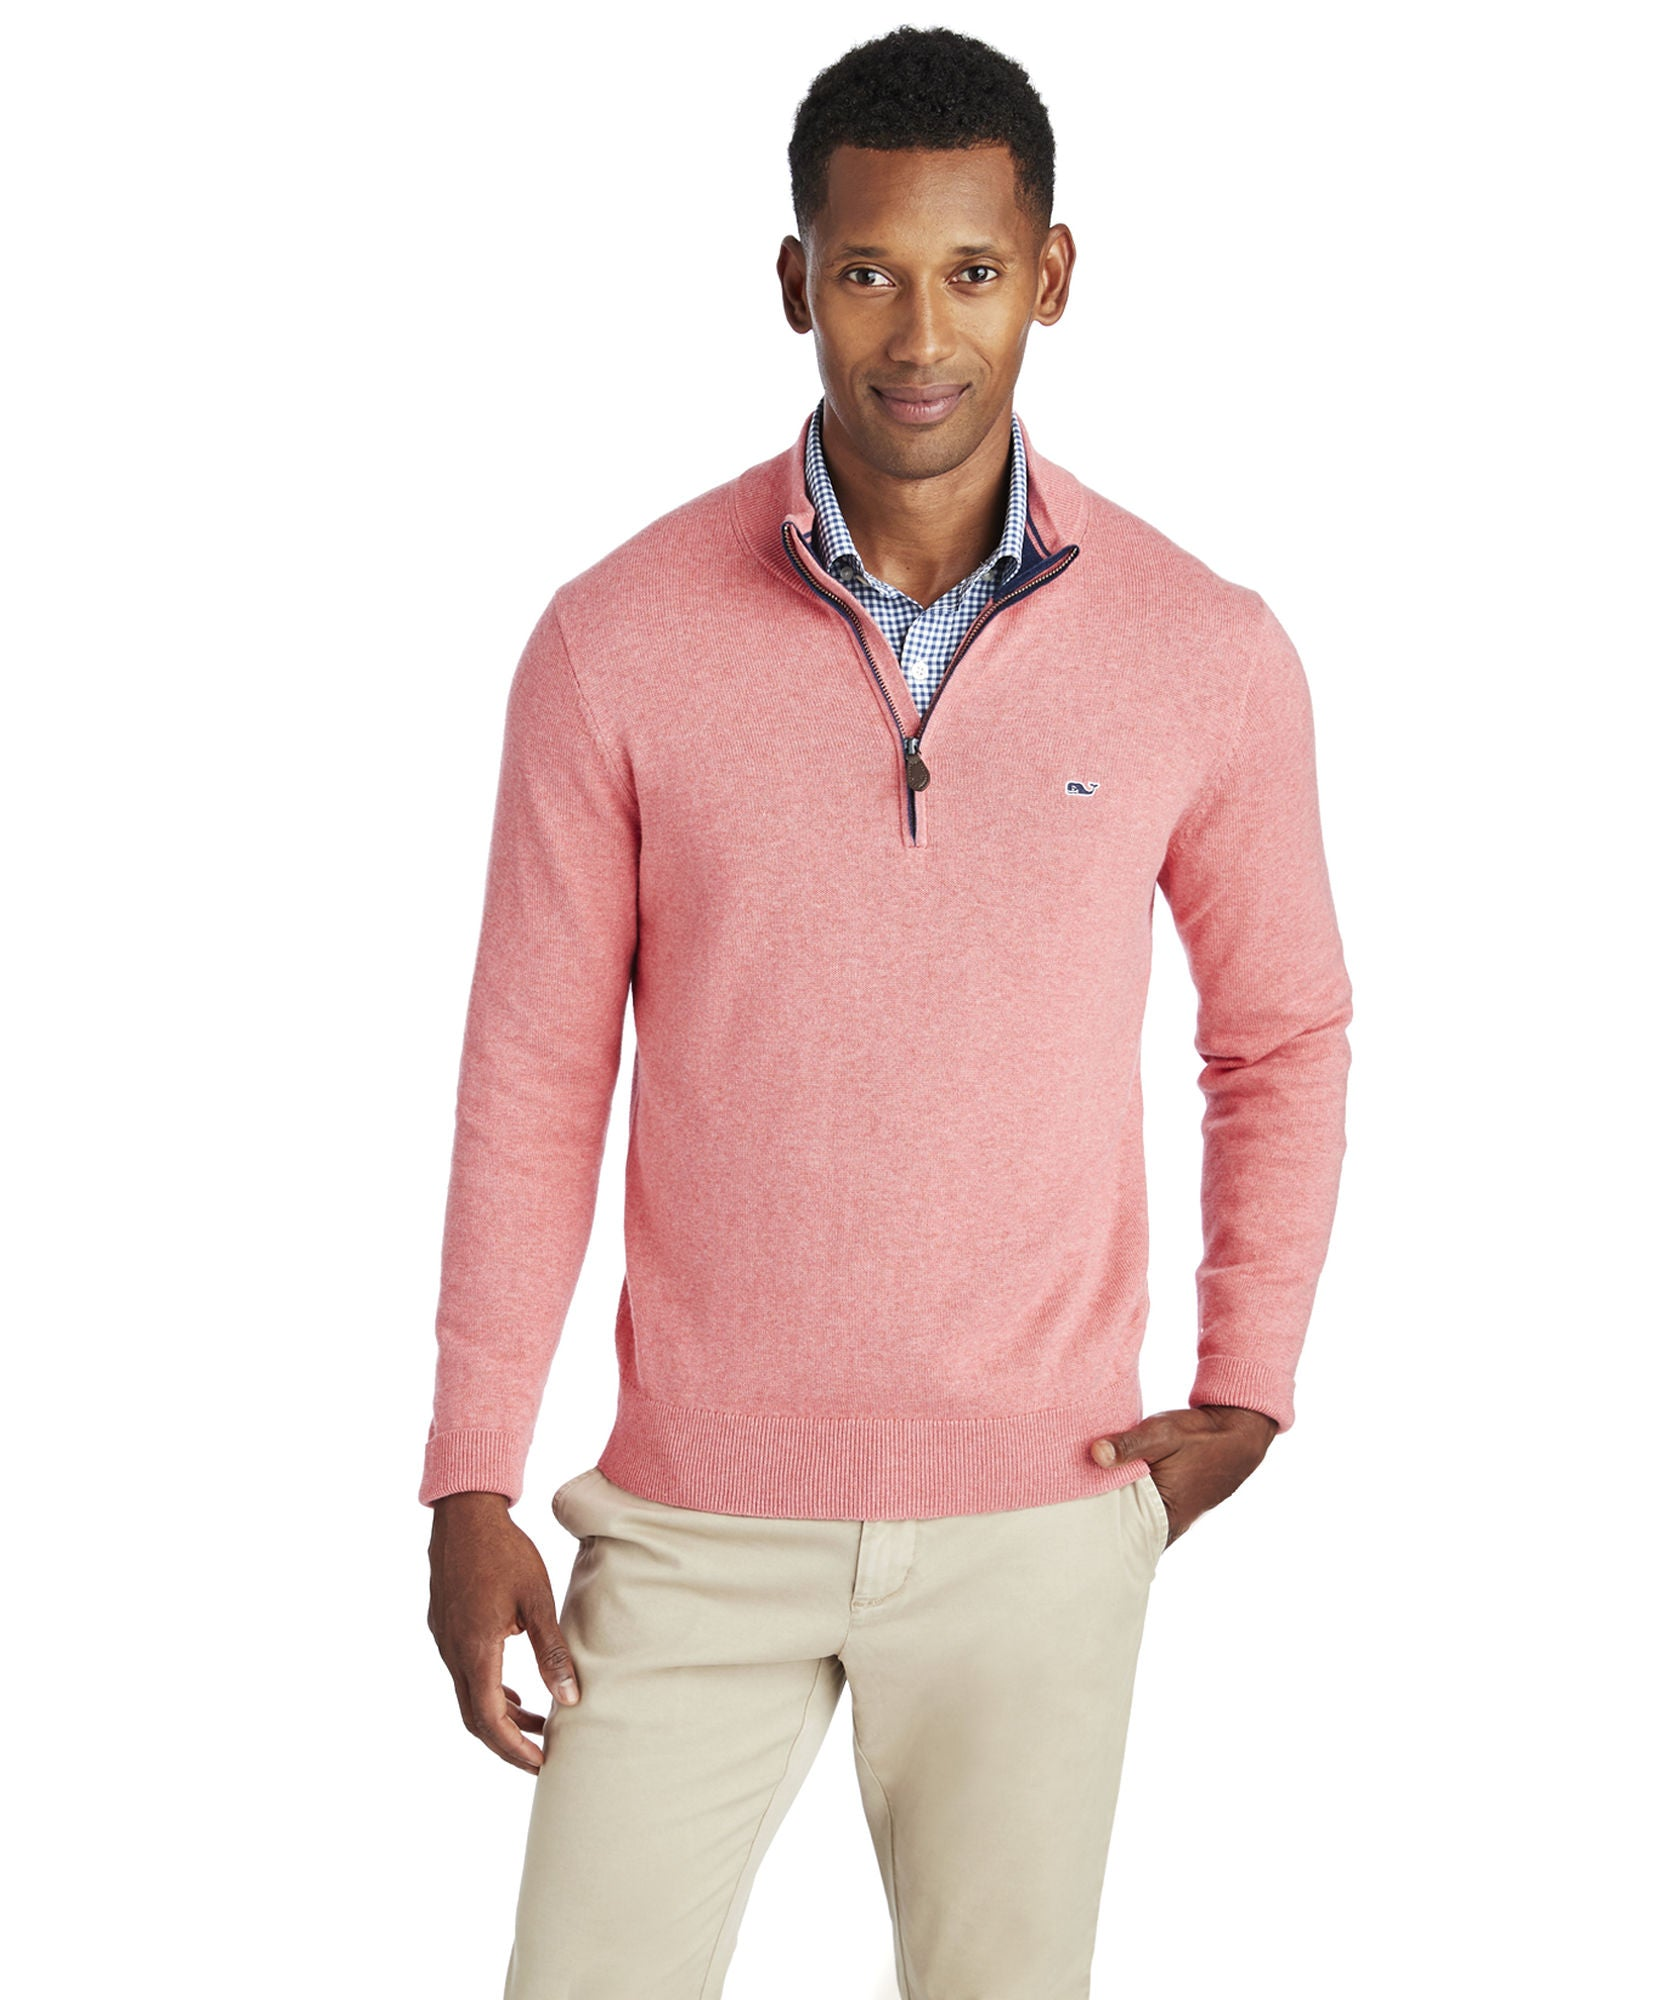 Vineyard Vines Palm Beach Cotton-Cashmere 1/4-Zip Sweater - Jetty Red